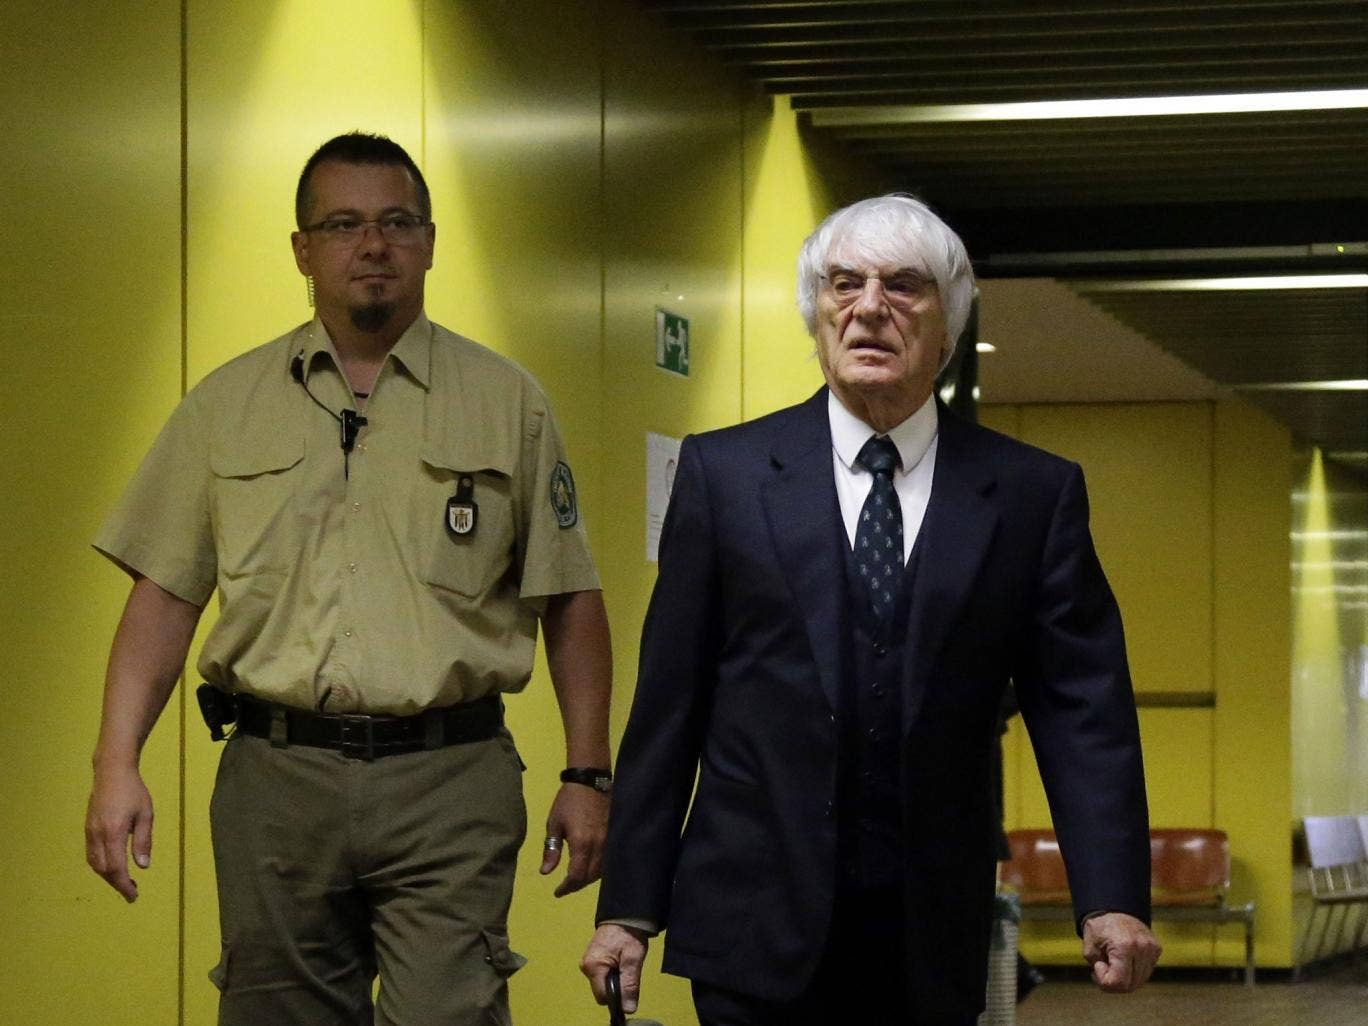 Bernie Ecclestone was accused of paying a £26m bribe for the sale of Formula One to a private equity firm